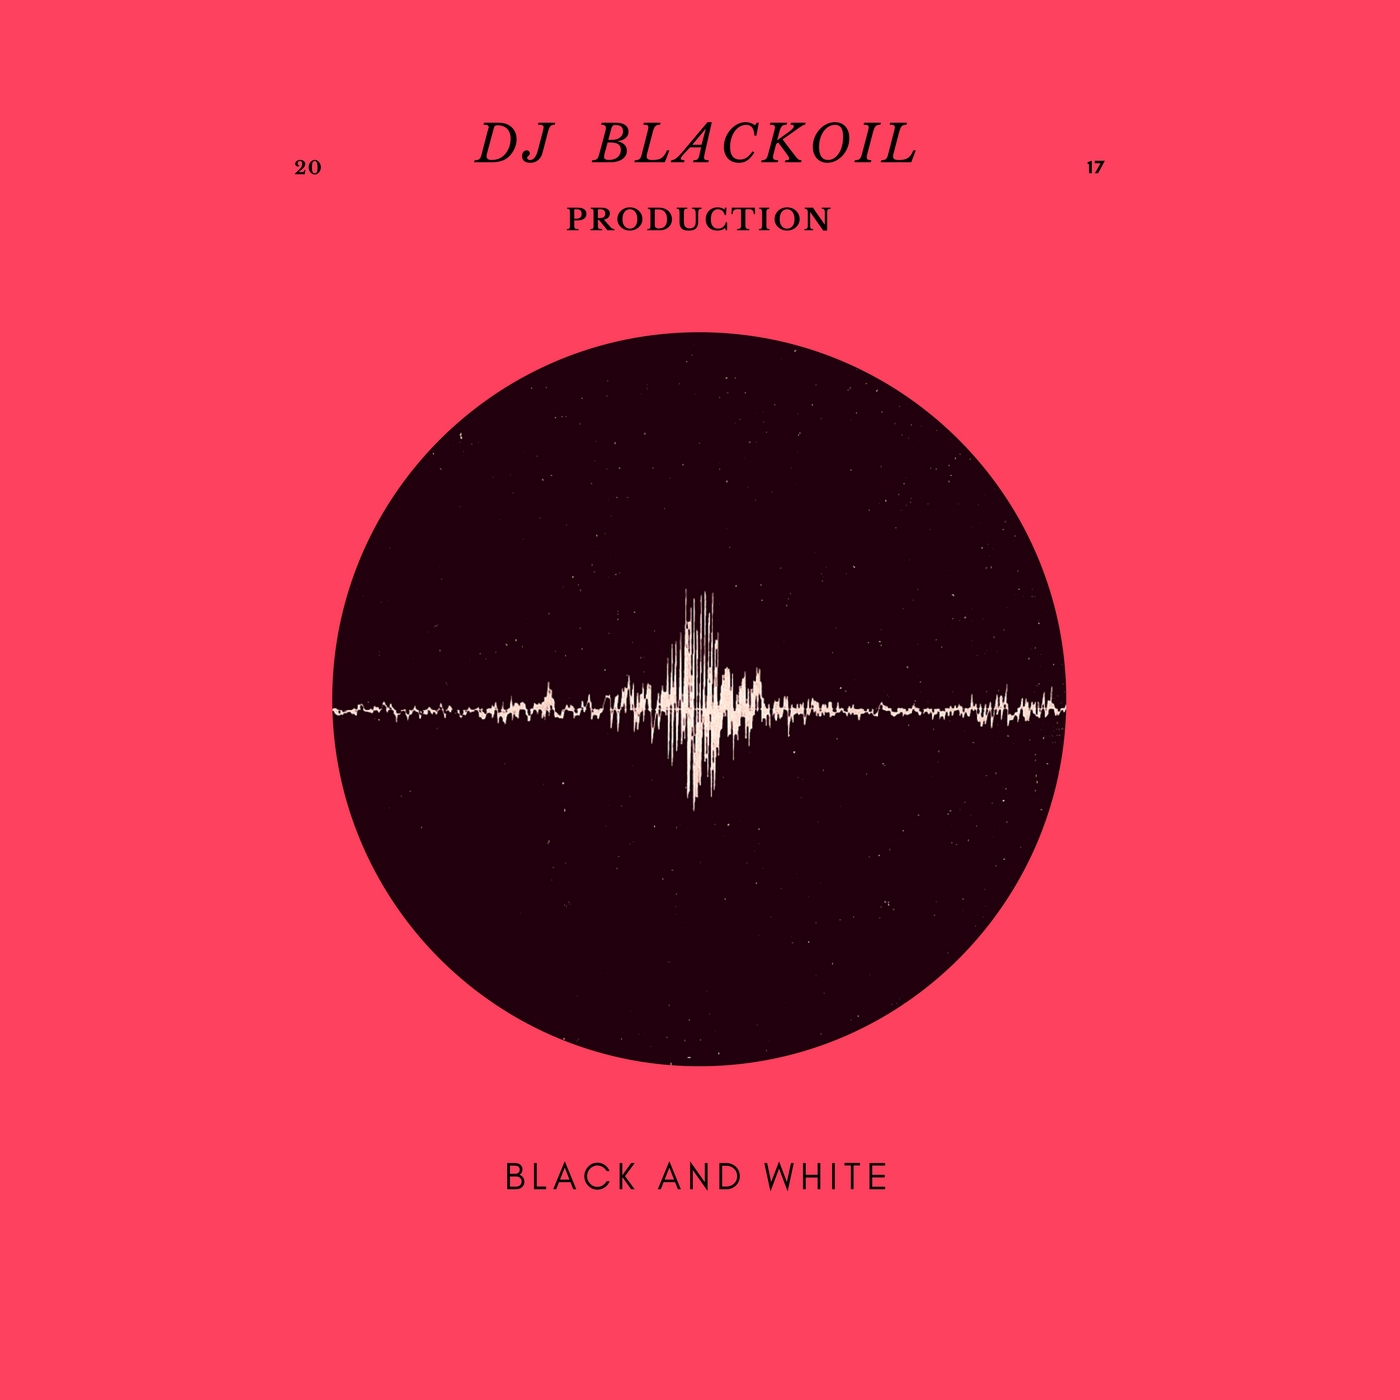 Djblackoil Production - BLACK AND WHITE (2017)